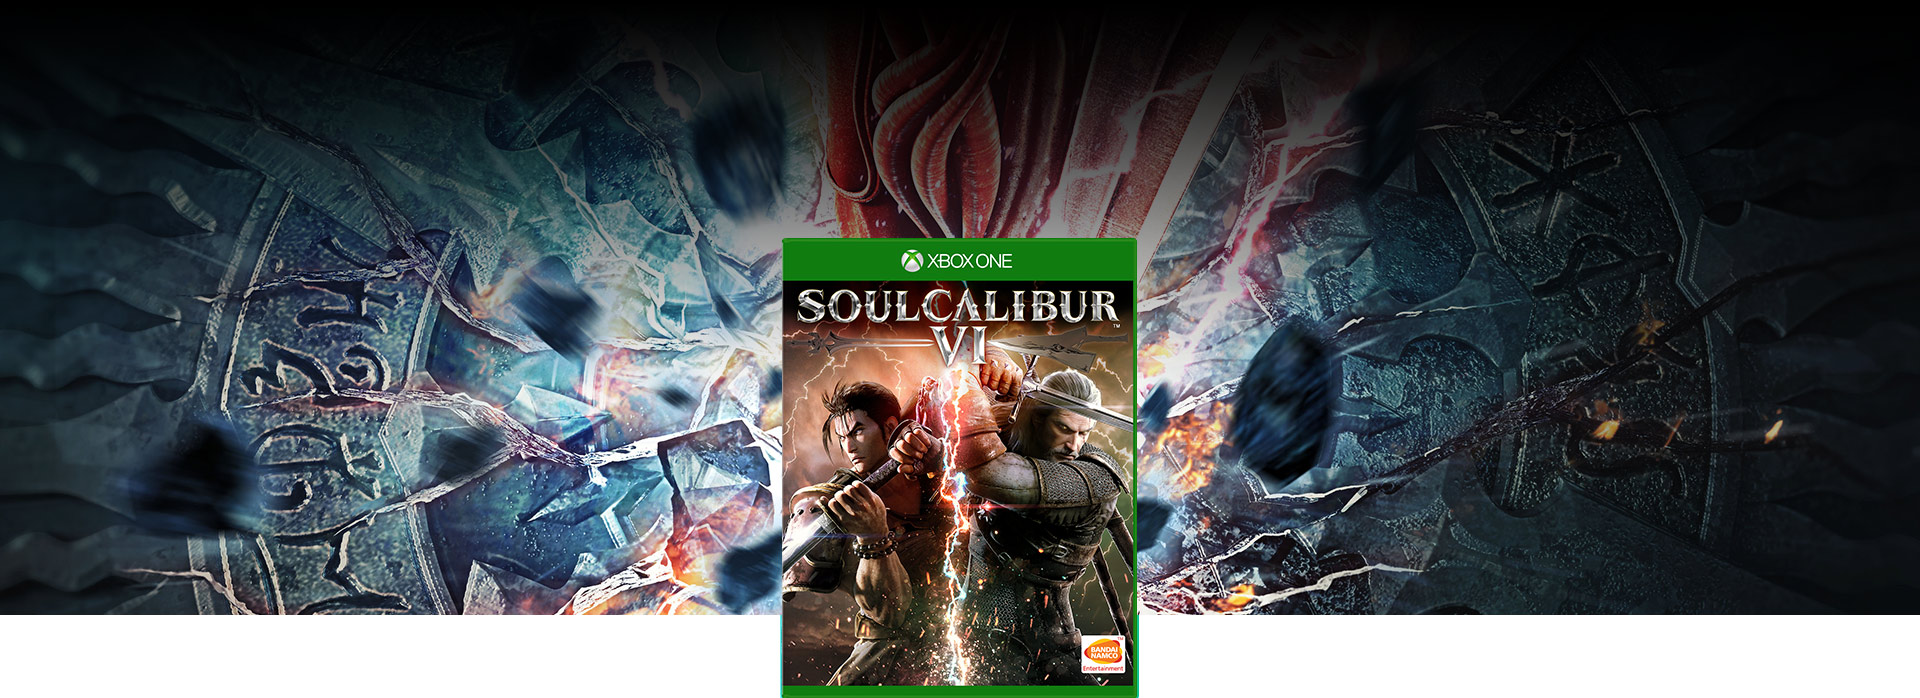 SOULCALIBUR VI boxshot with Soul Edge crashing into the ground